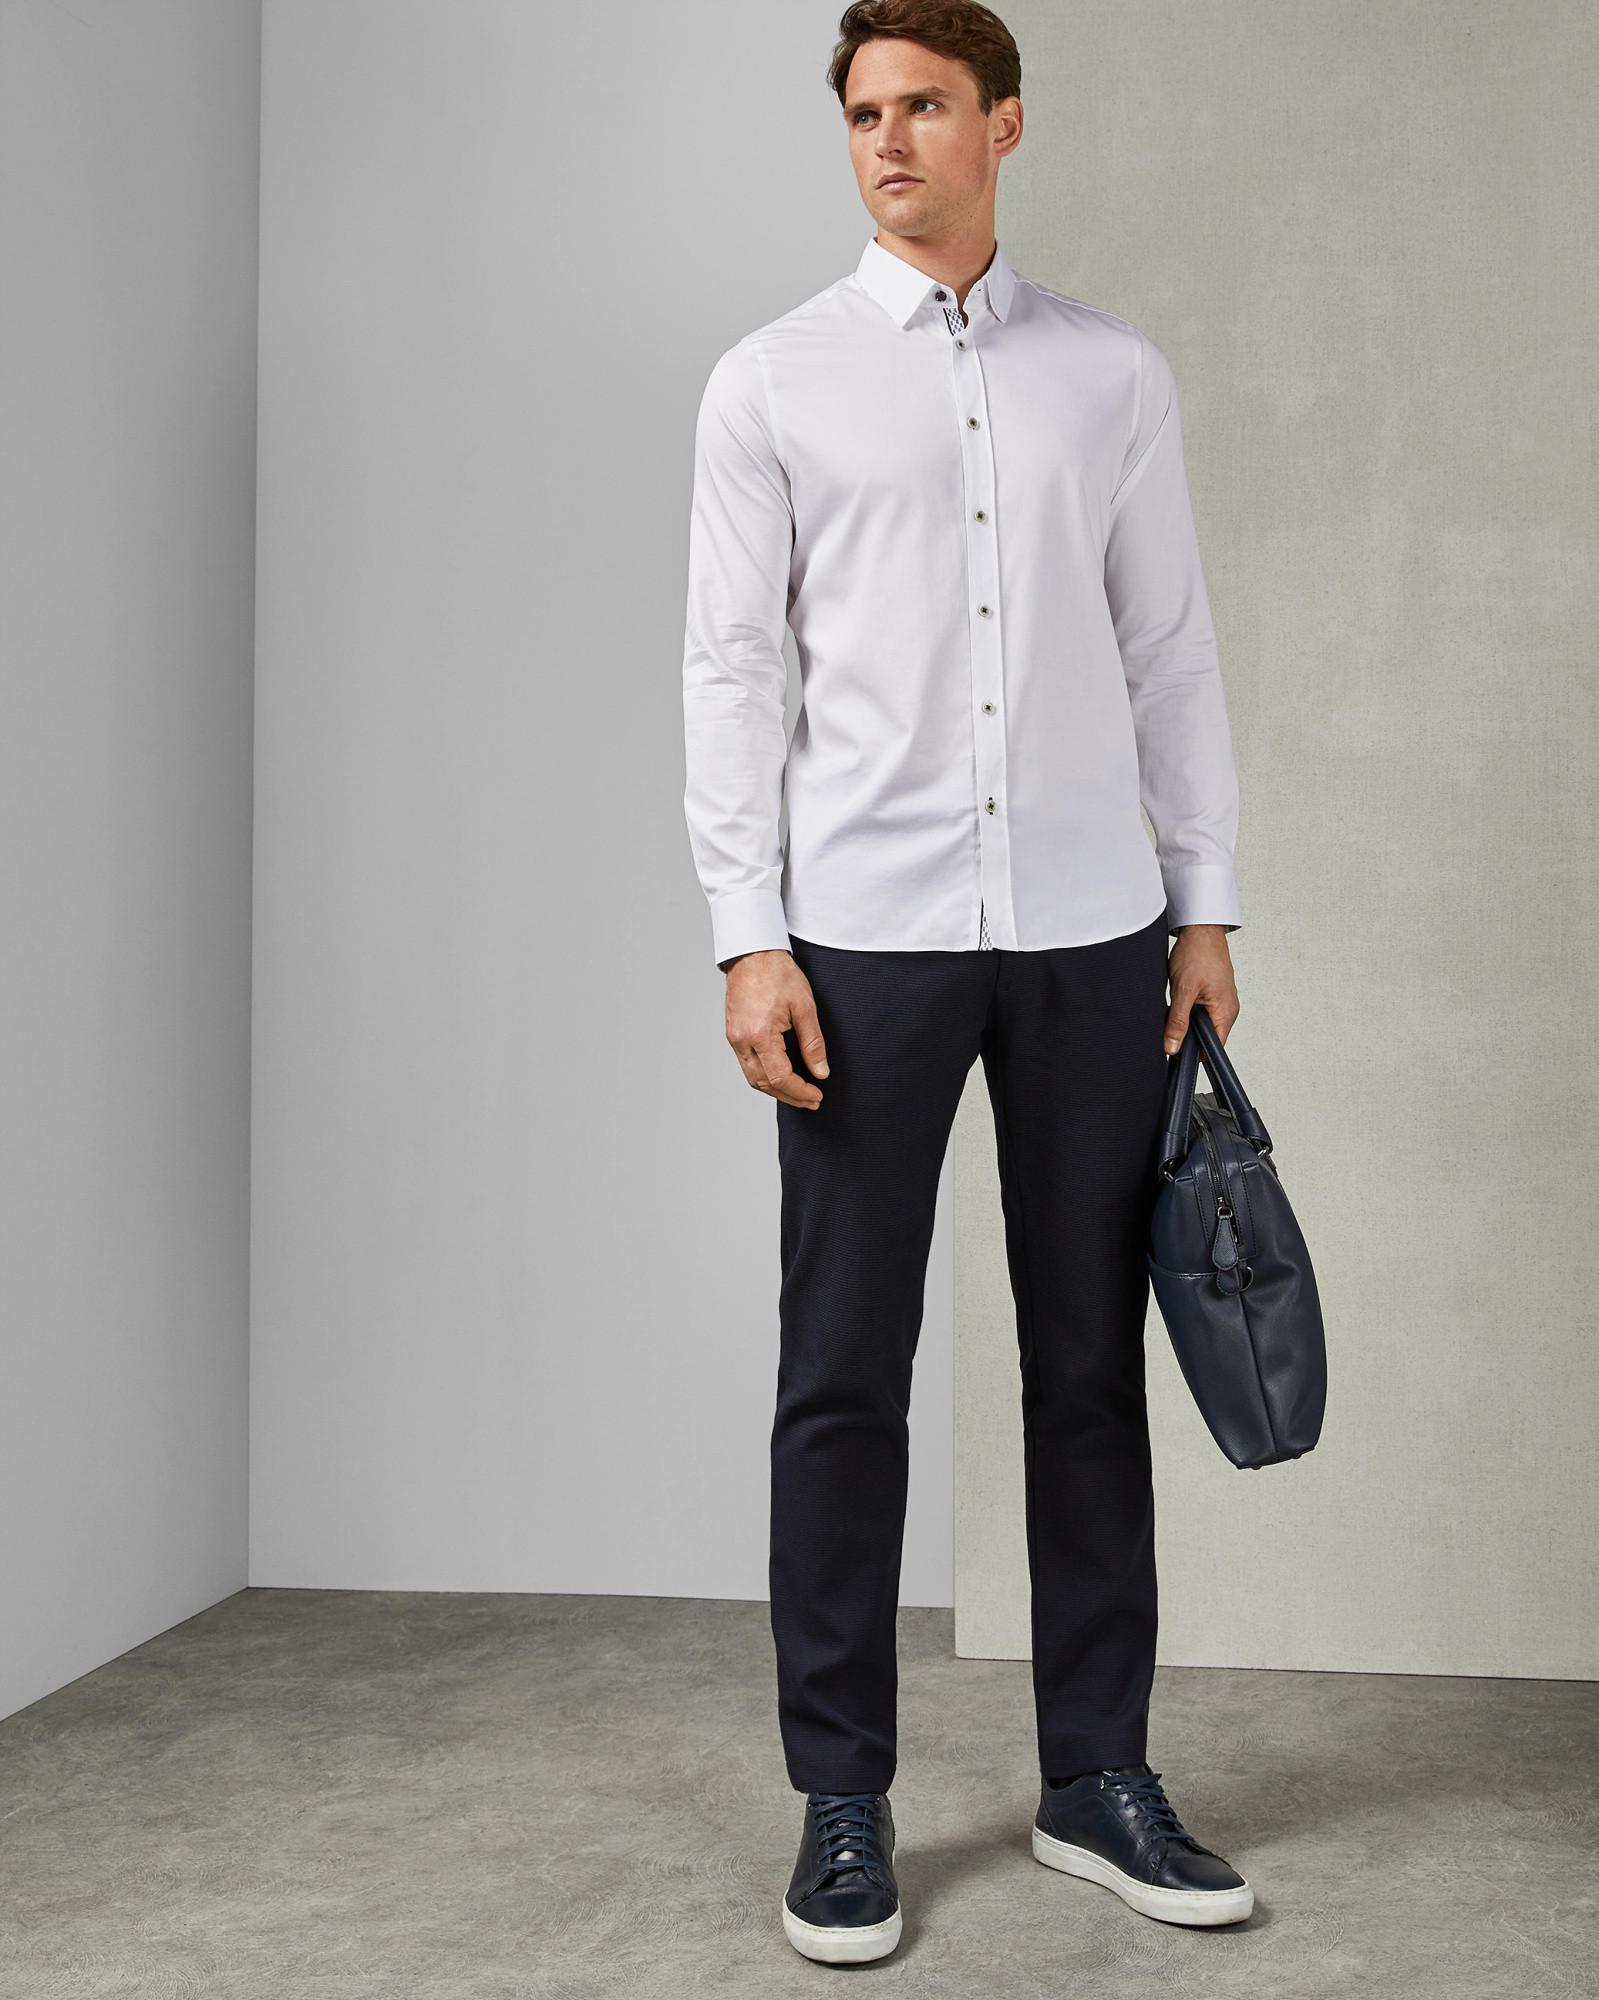 f15bc8ef038e4c Lyst - Ted Baker Satin Effect Cotton Stretch Shirt in White for Men